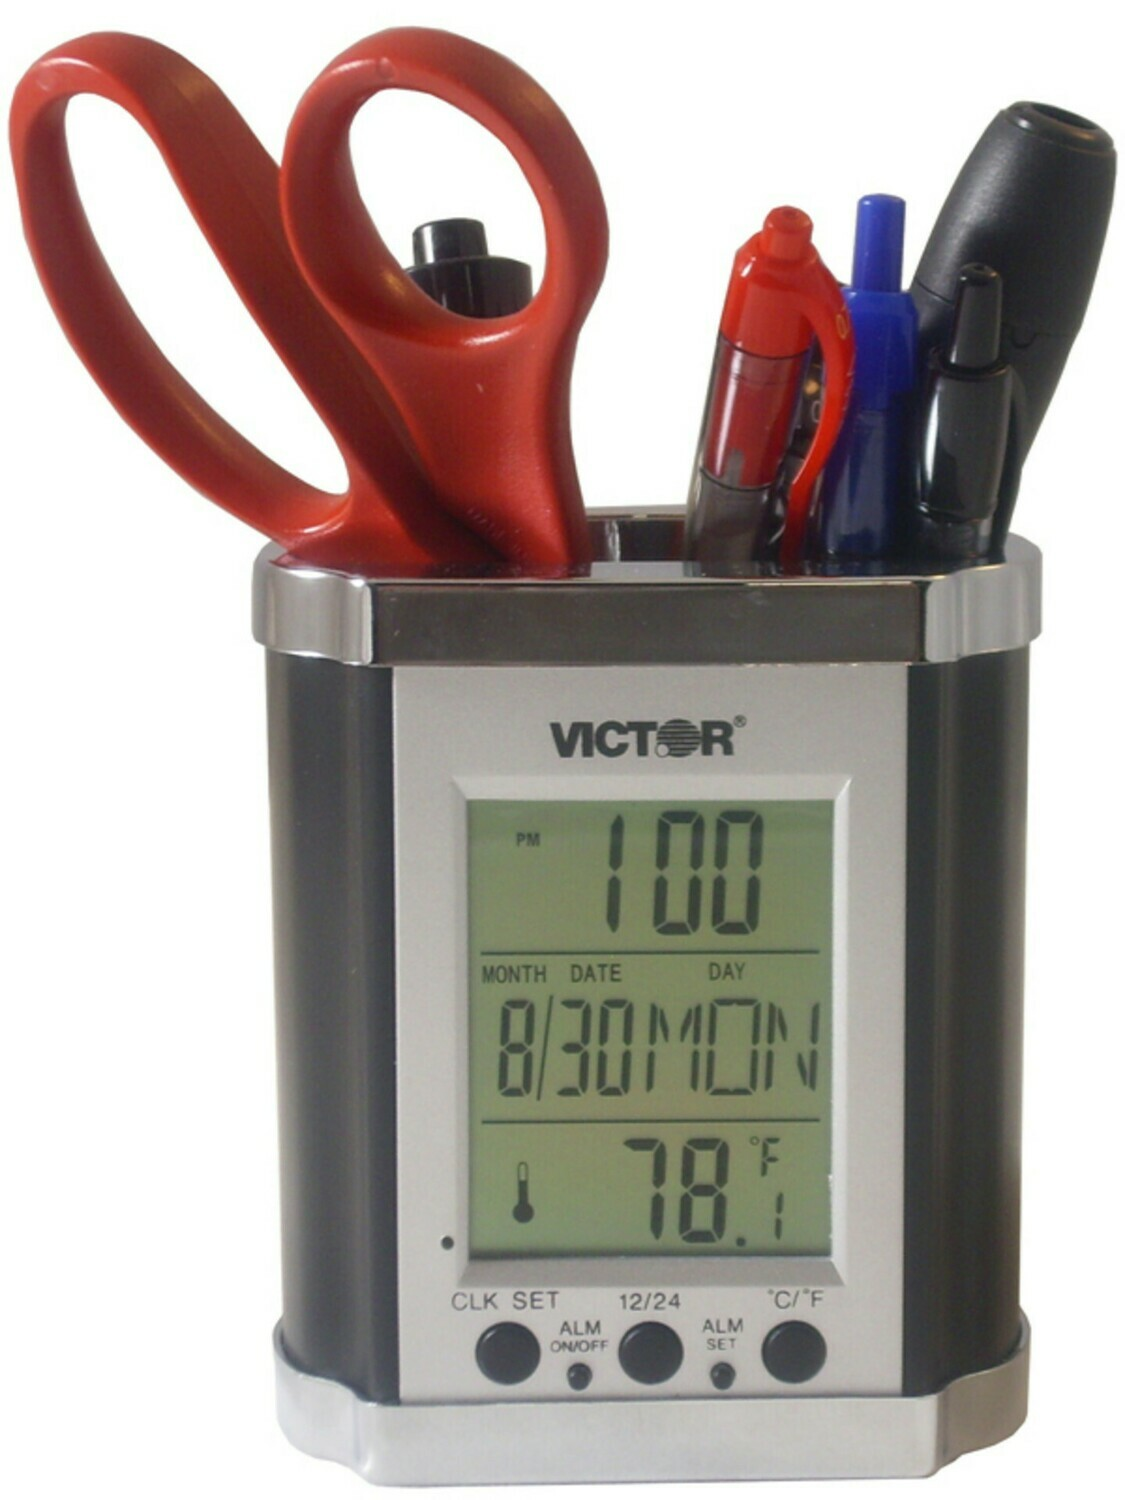 Victor Technology / Electronic Pencil Holder with LCD Display-Black and Chrome